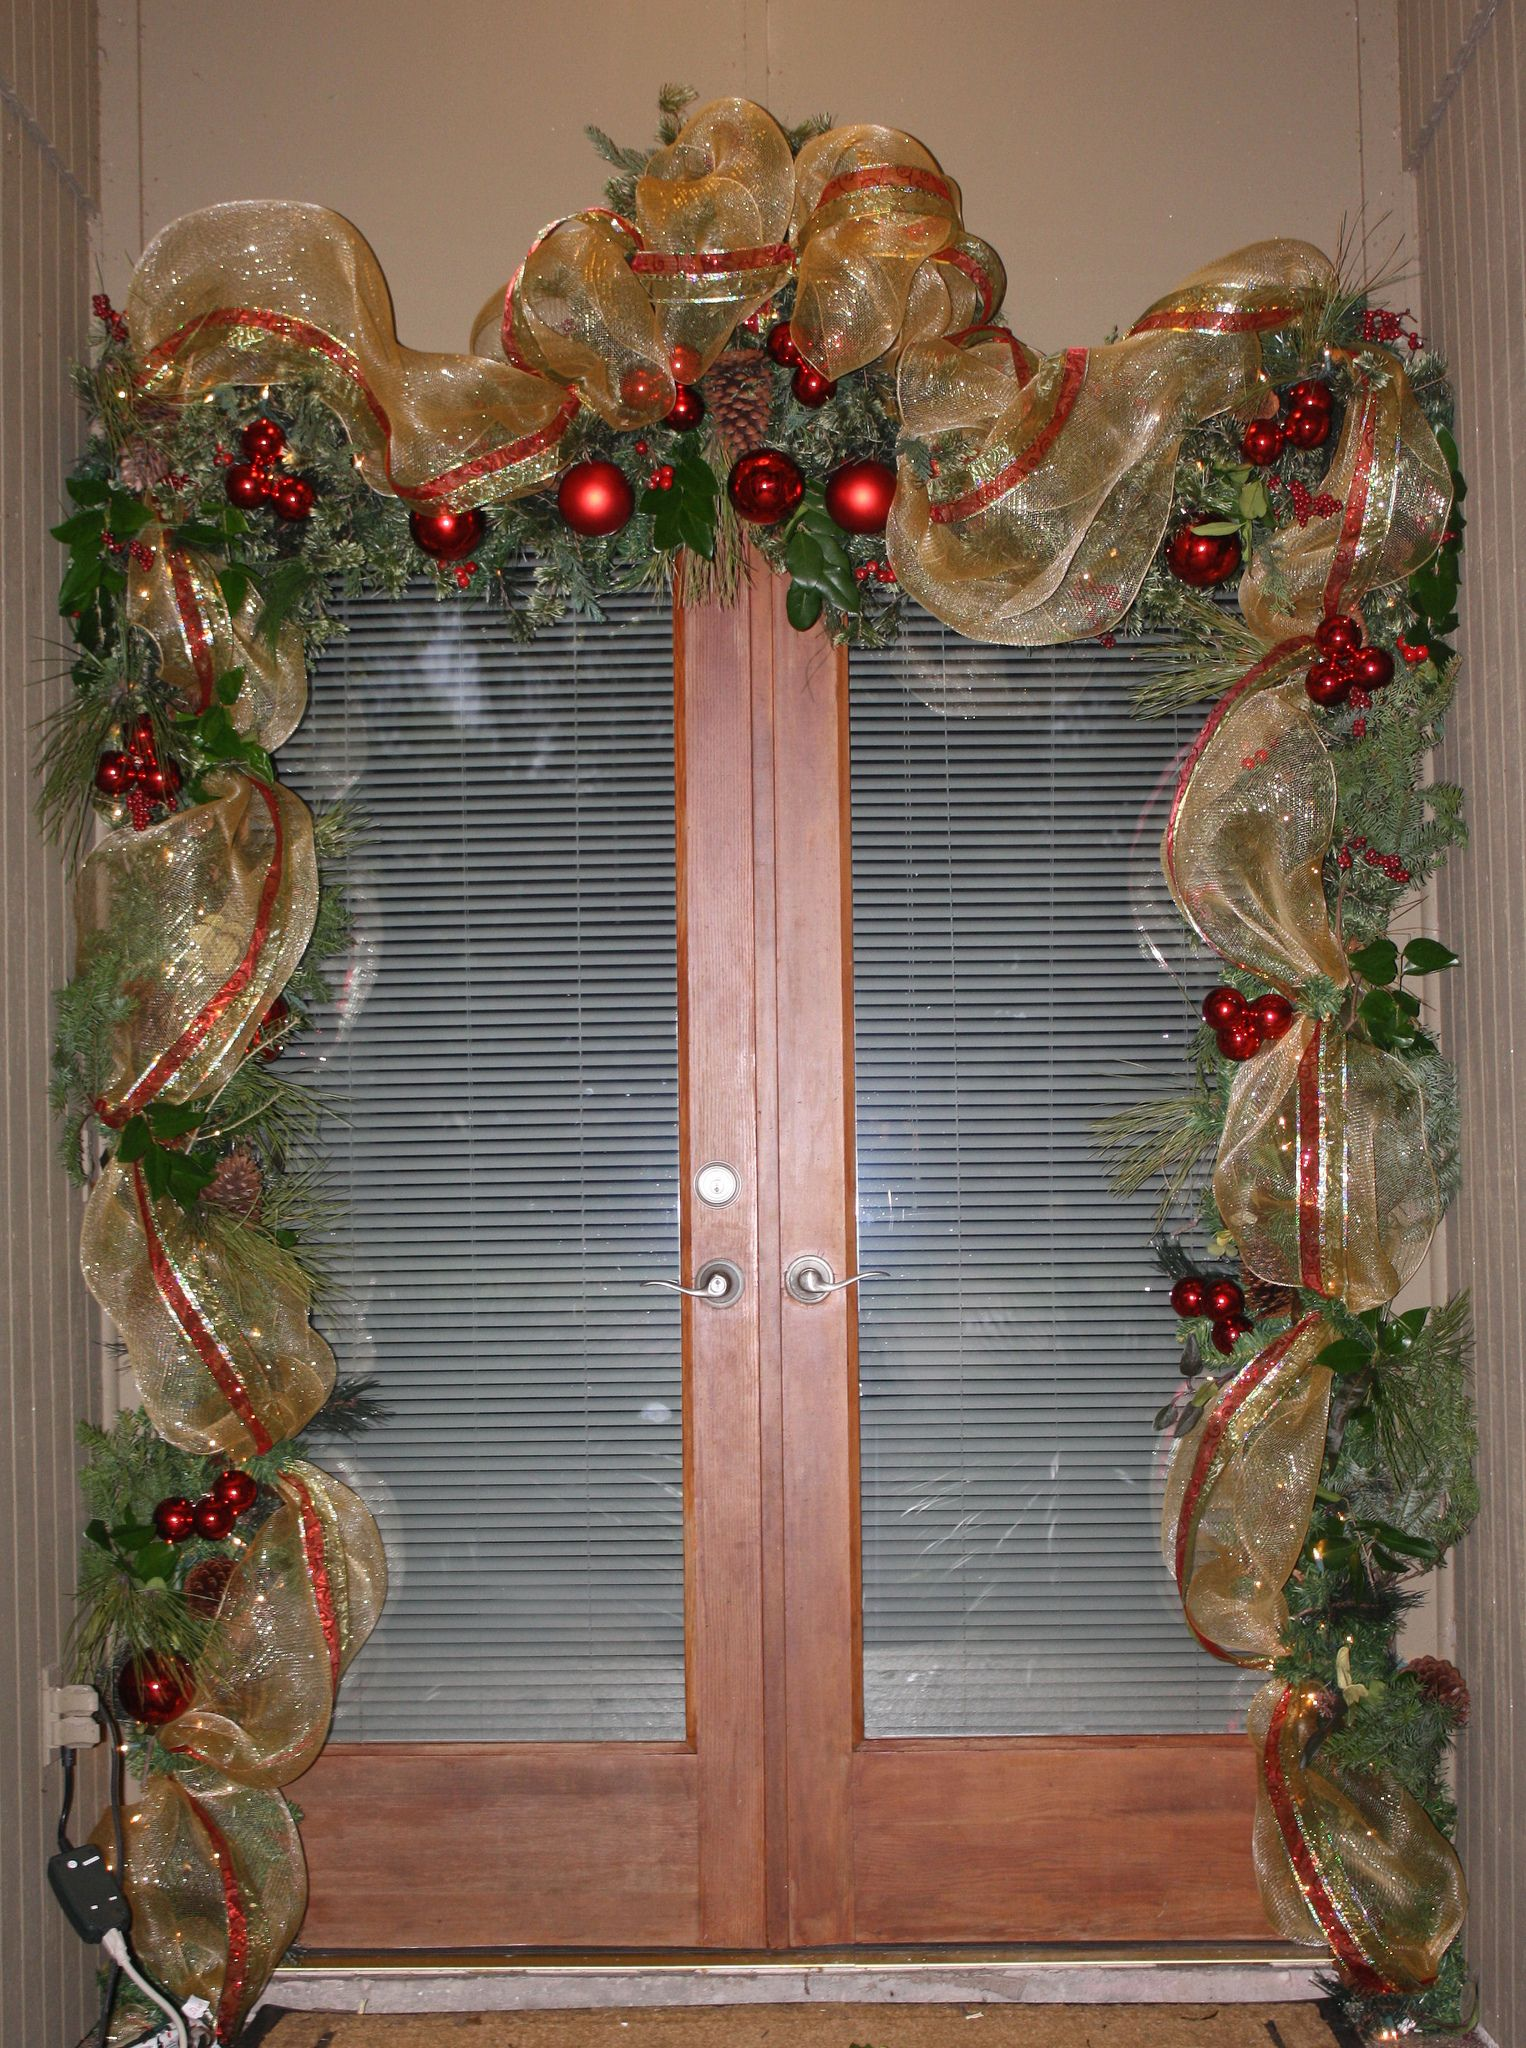 Front Door Garland Using 21 Deco Mesh And Wired Ribbon And Tucking In Some Fresh Greenery Christmas Diy Christmas Swags Christmas Door Decorations